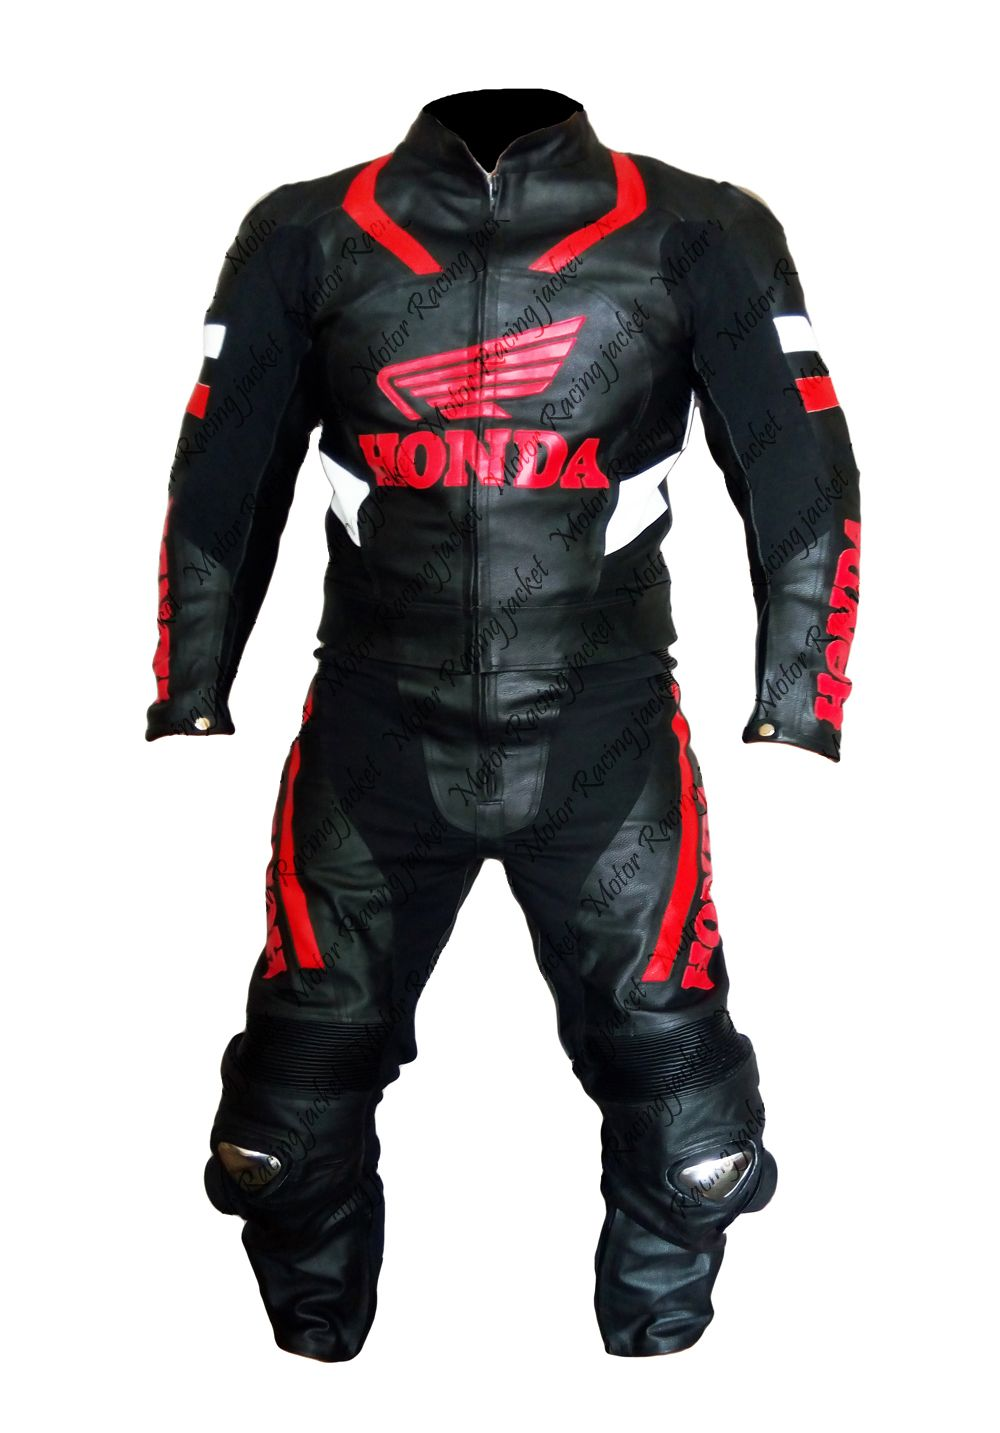 Suzuki Gsx Black Motorbike Motorcycle Cowhide Leather Armoured Pant/trouser Clothing, Shoes & Accessories Pants